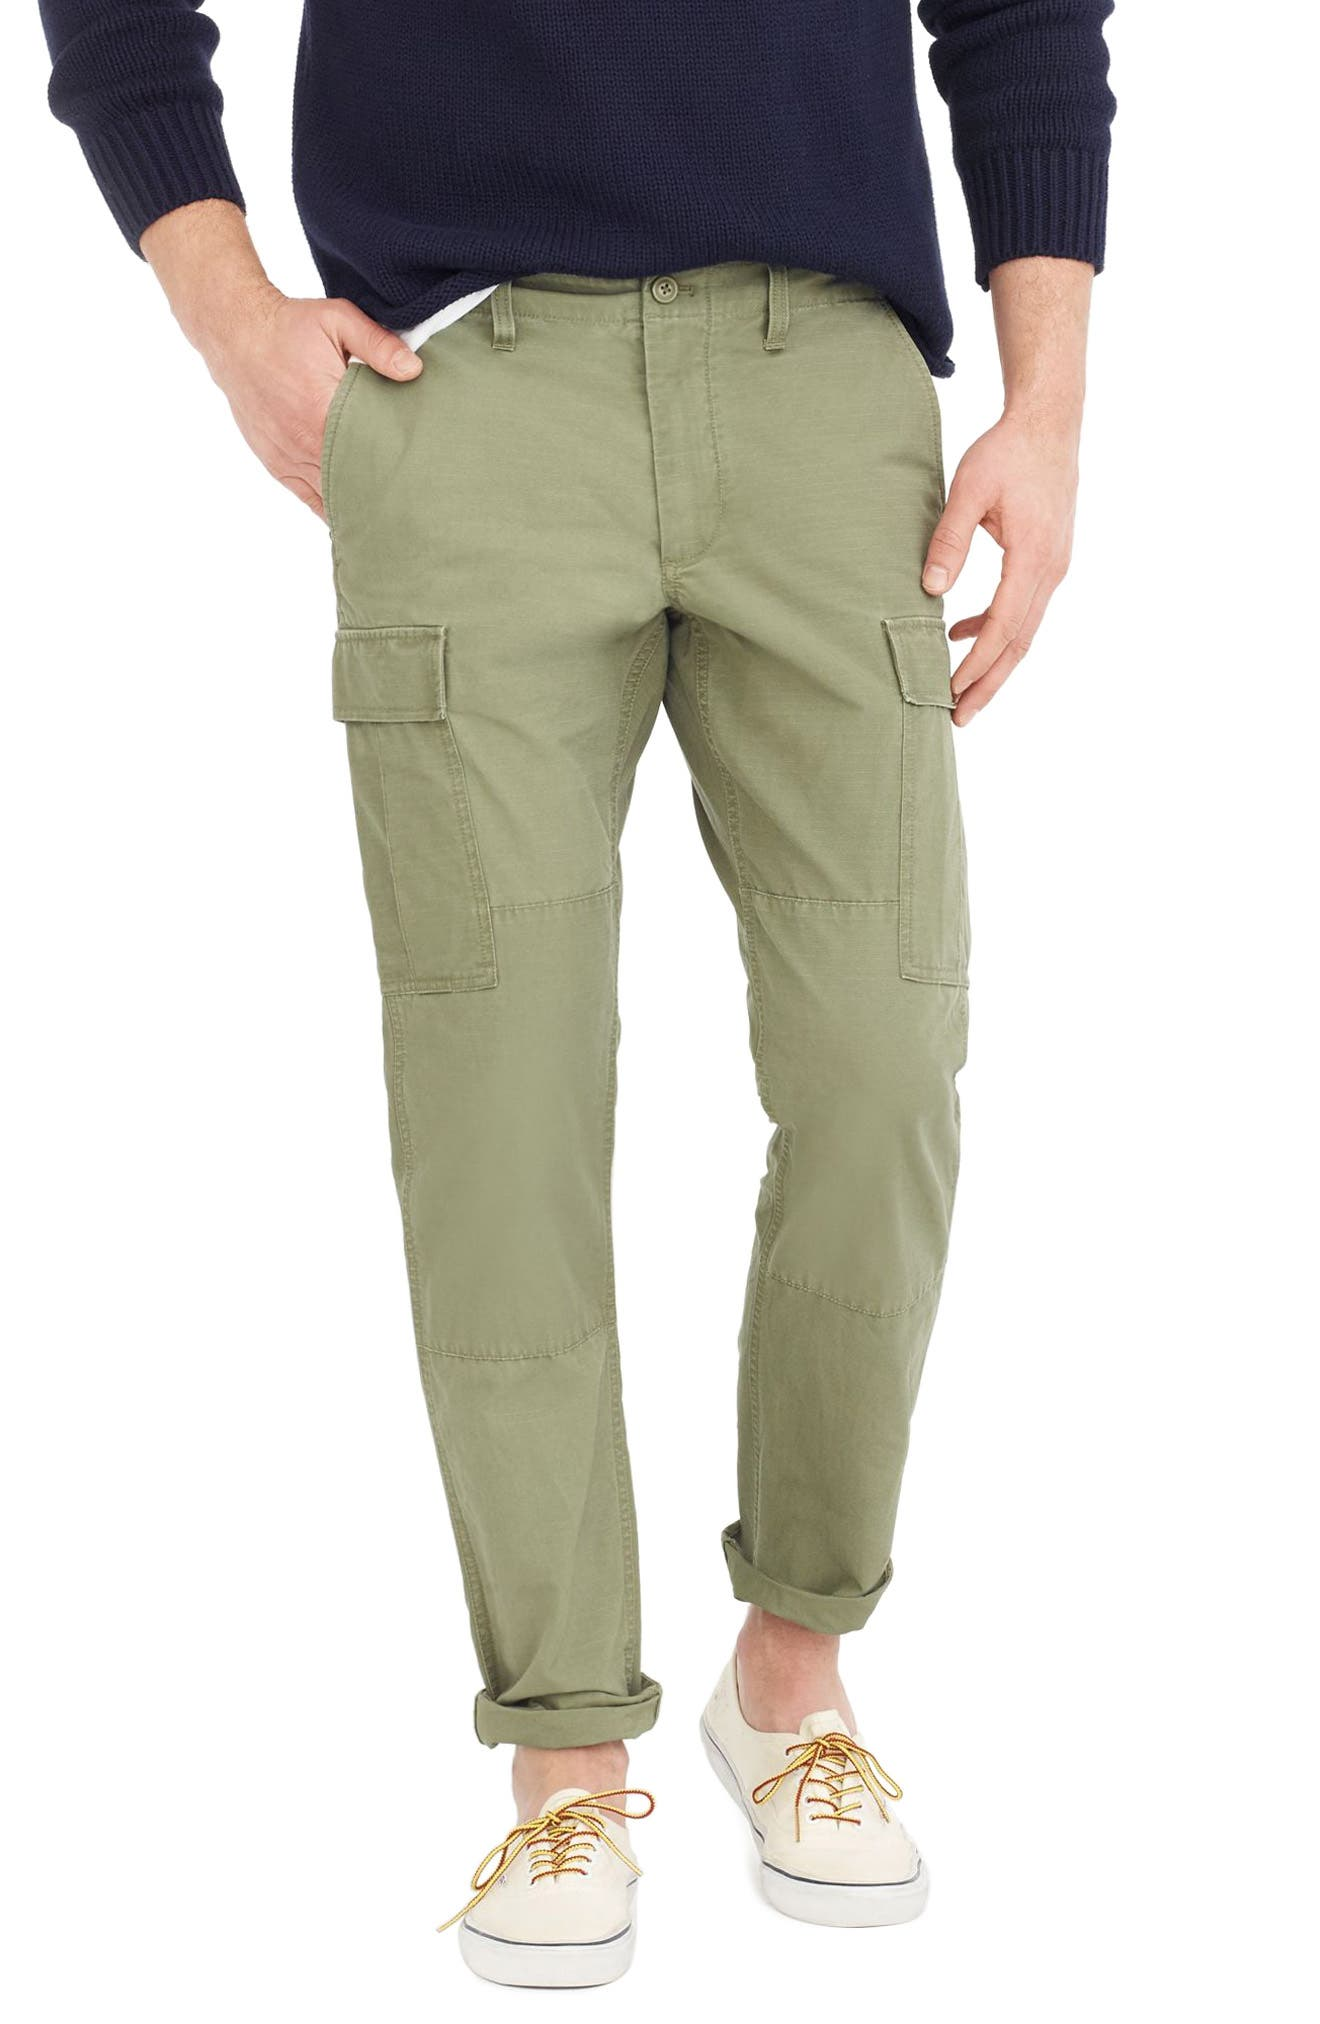 Alternate Image 1 Selected - J.Crew 770 Straight Fit Ripstop Cargo Pants